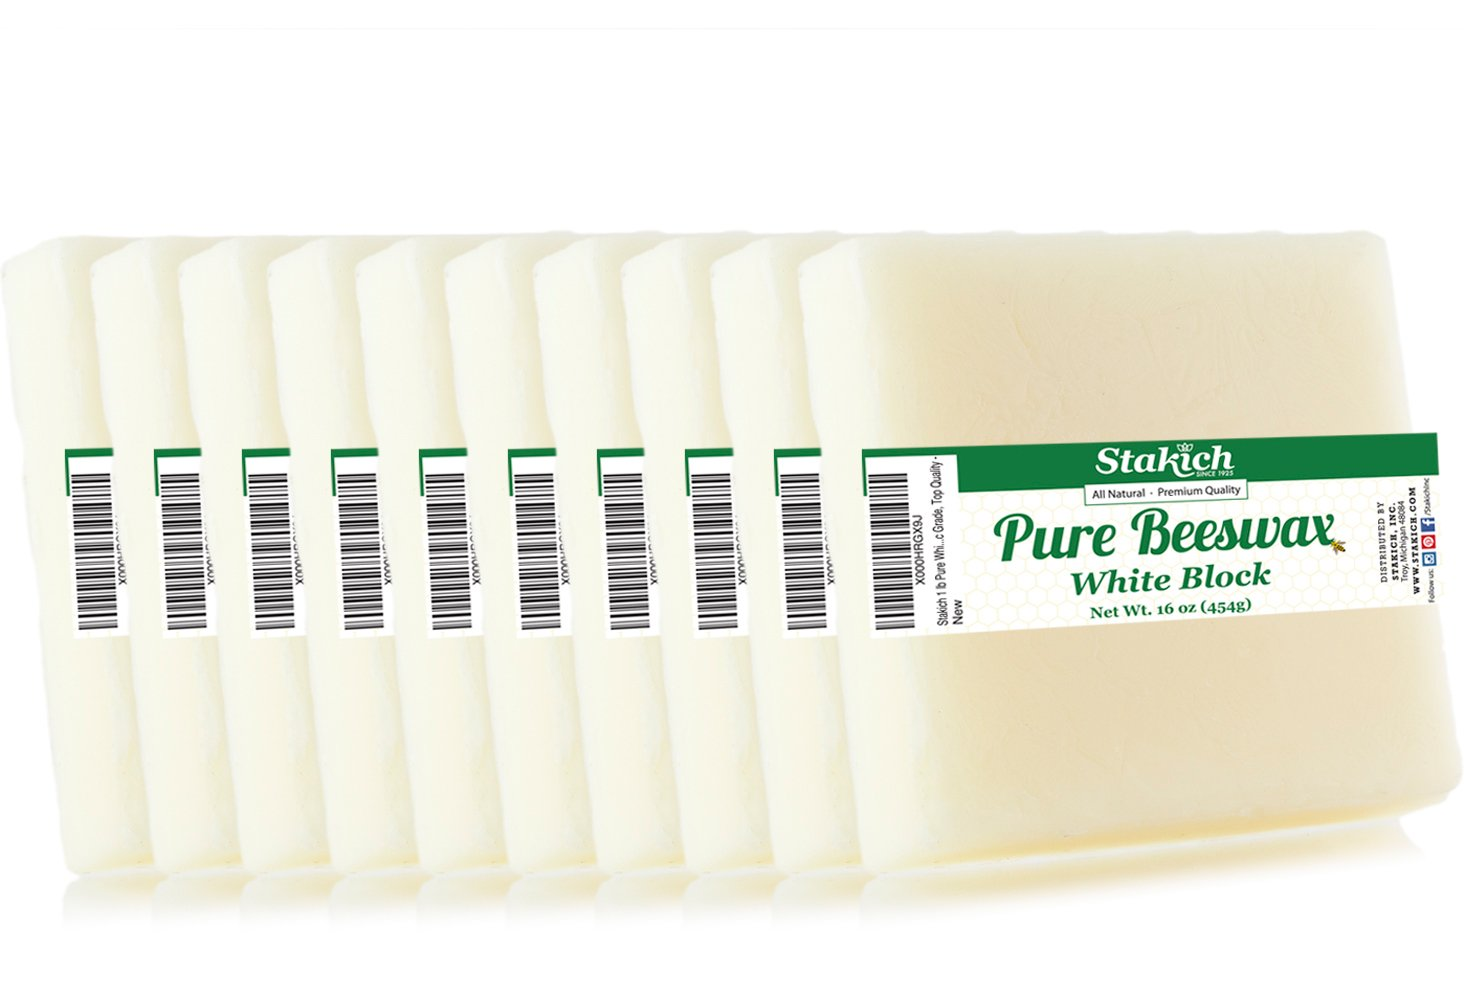 Stakich Pure White BEESWAX Blocks - 100% Natural, Cosmetic Grade, Premium Quality - 10 lb (in 1 lb blocks) by Stakich (Image #1)